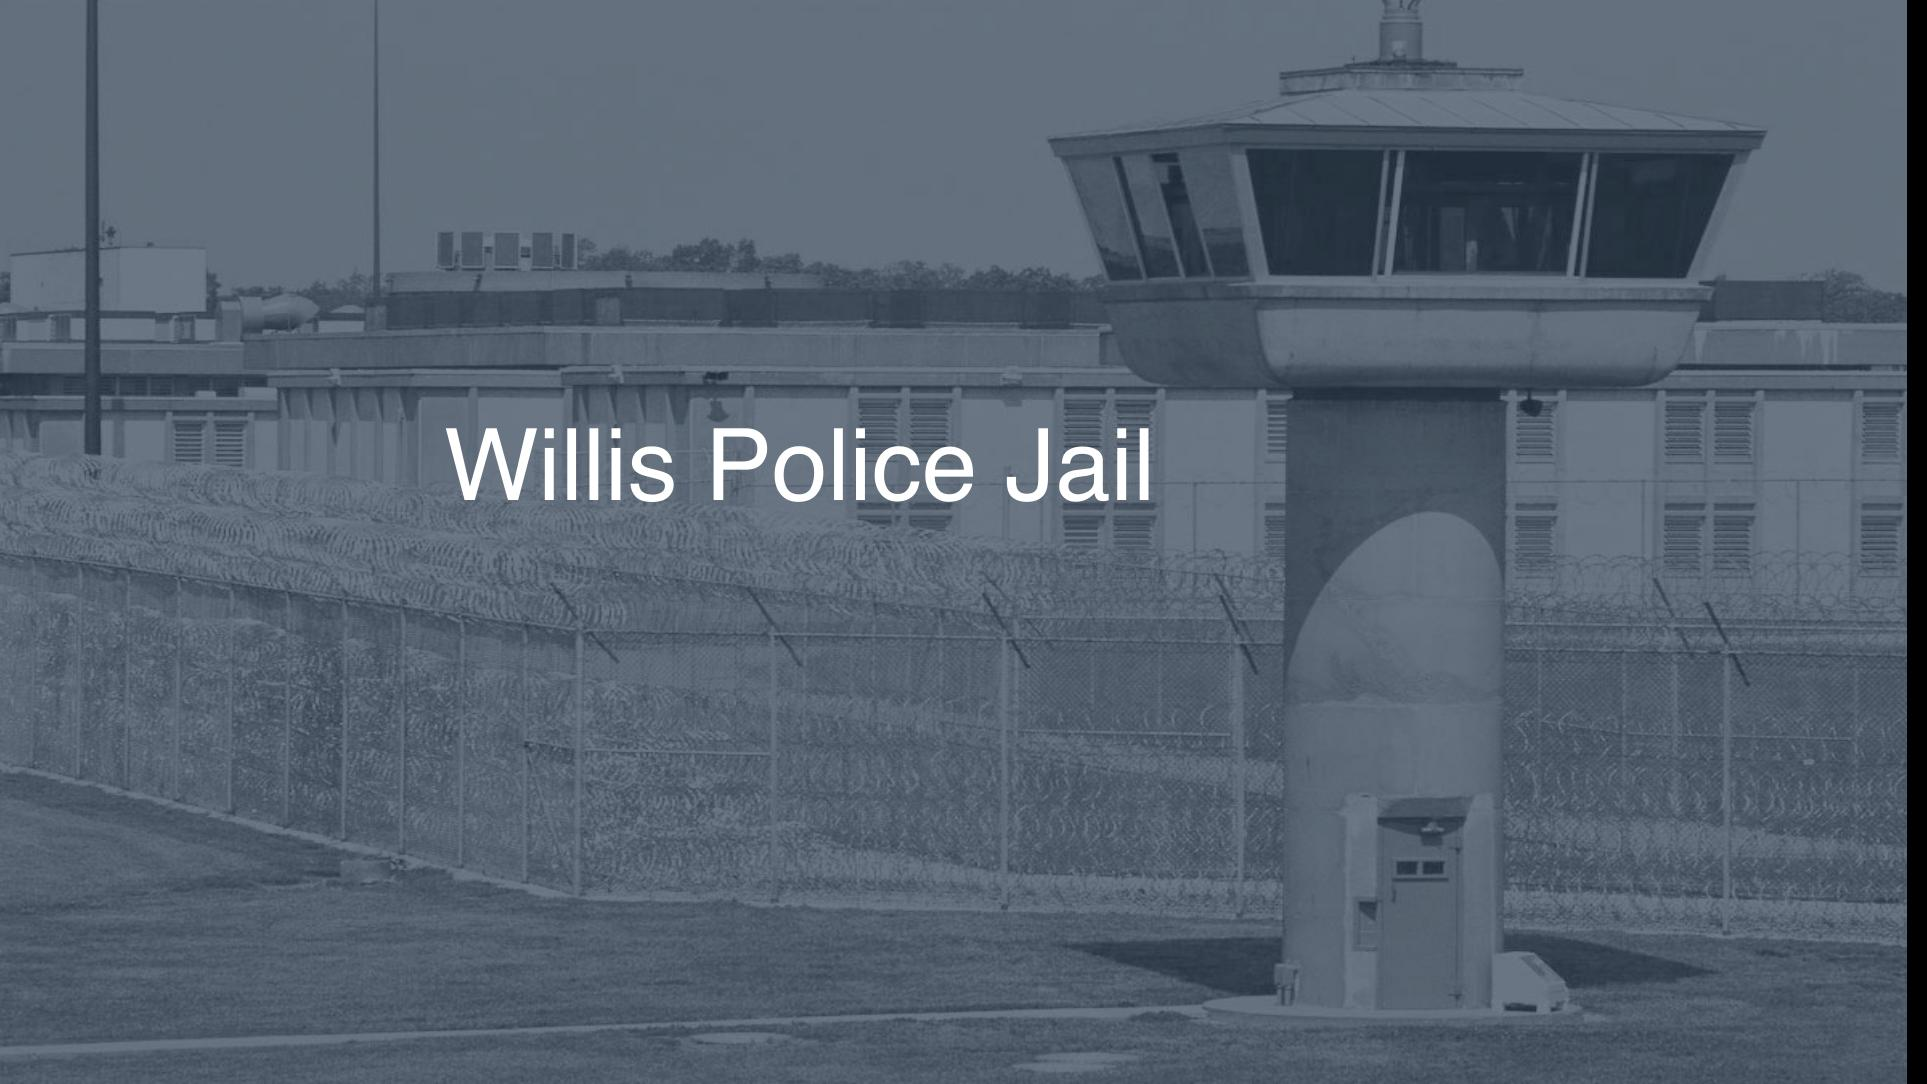 Willis Police Jail correctional facility picture